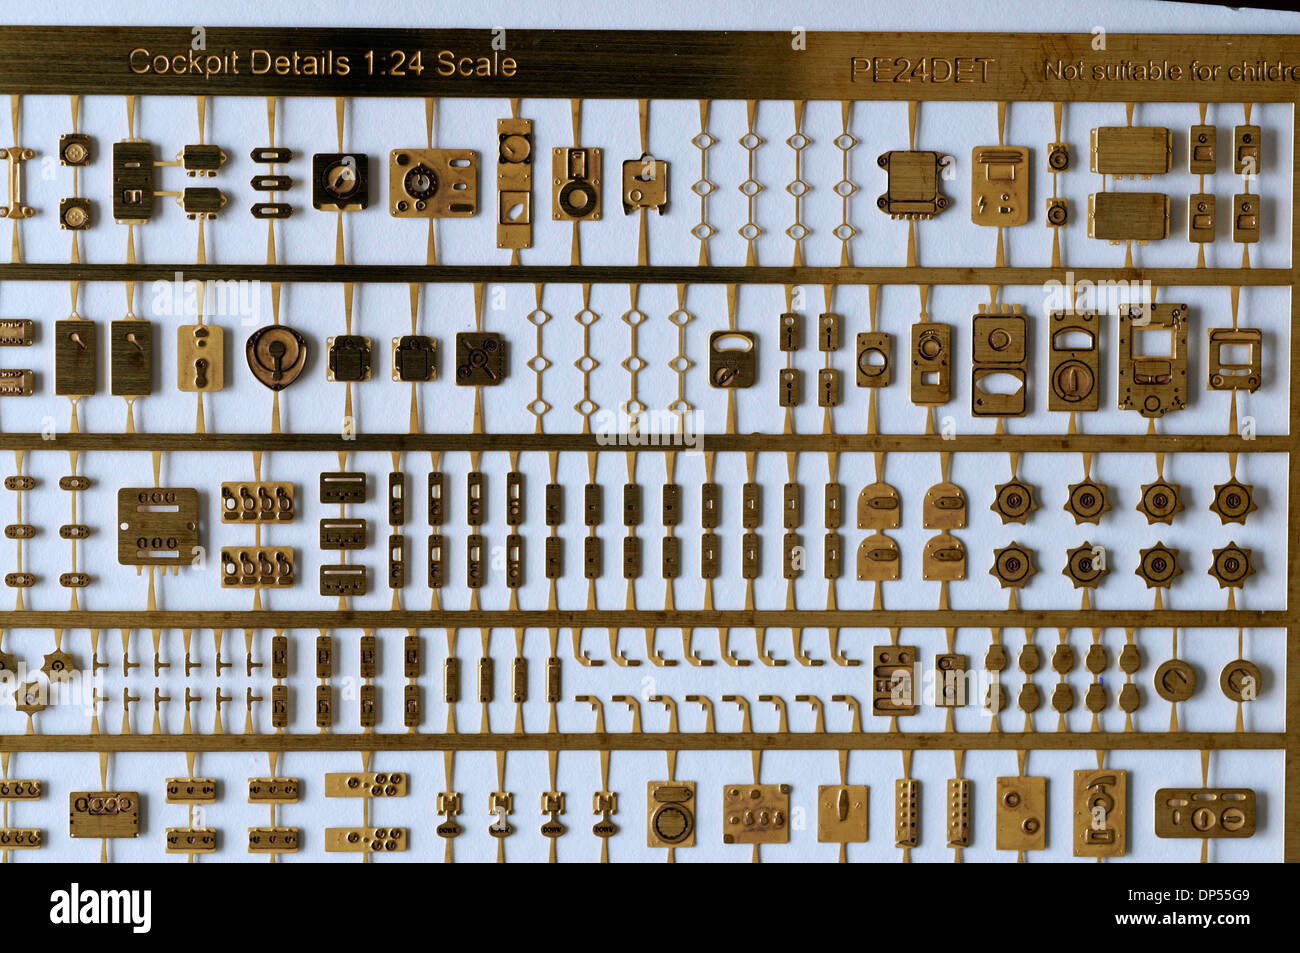 Metal Photo-etched scale model parts - 1/24th Scale Cockpit Details - Stock Image